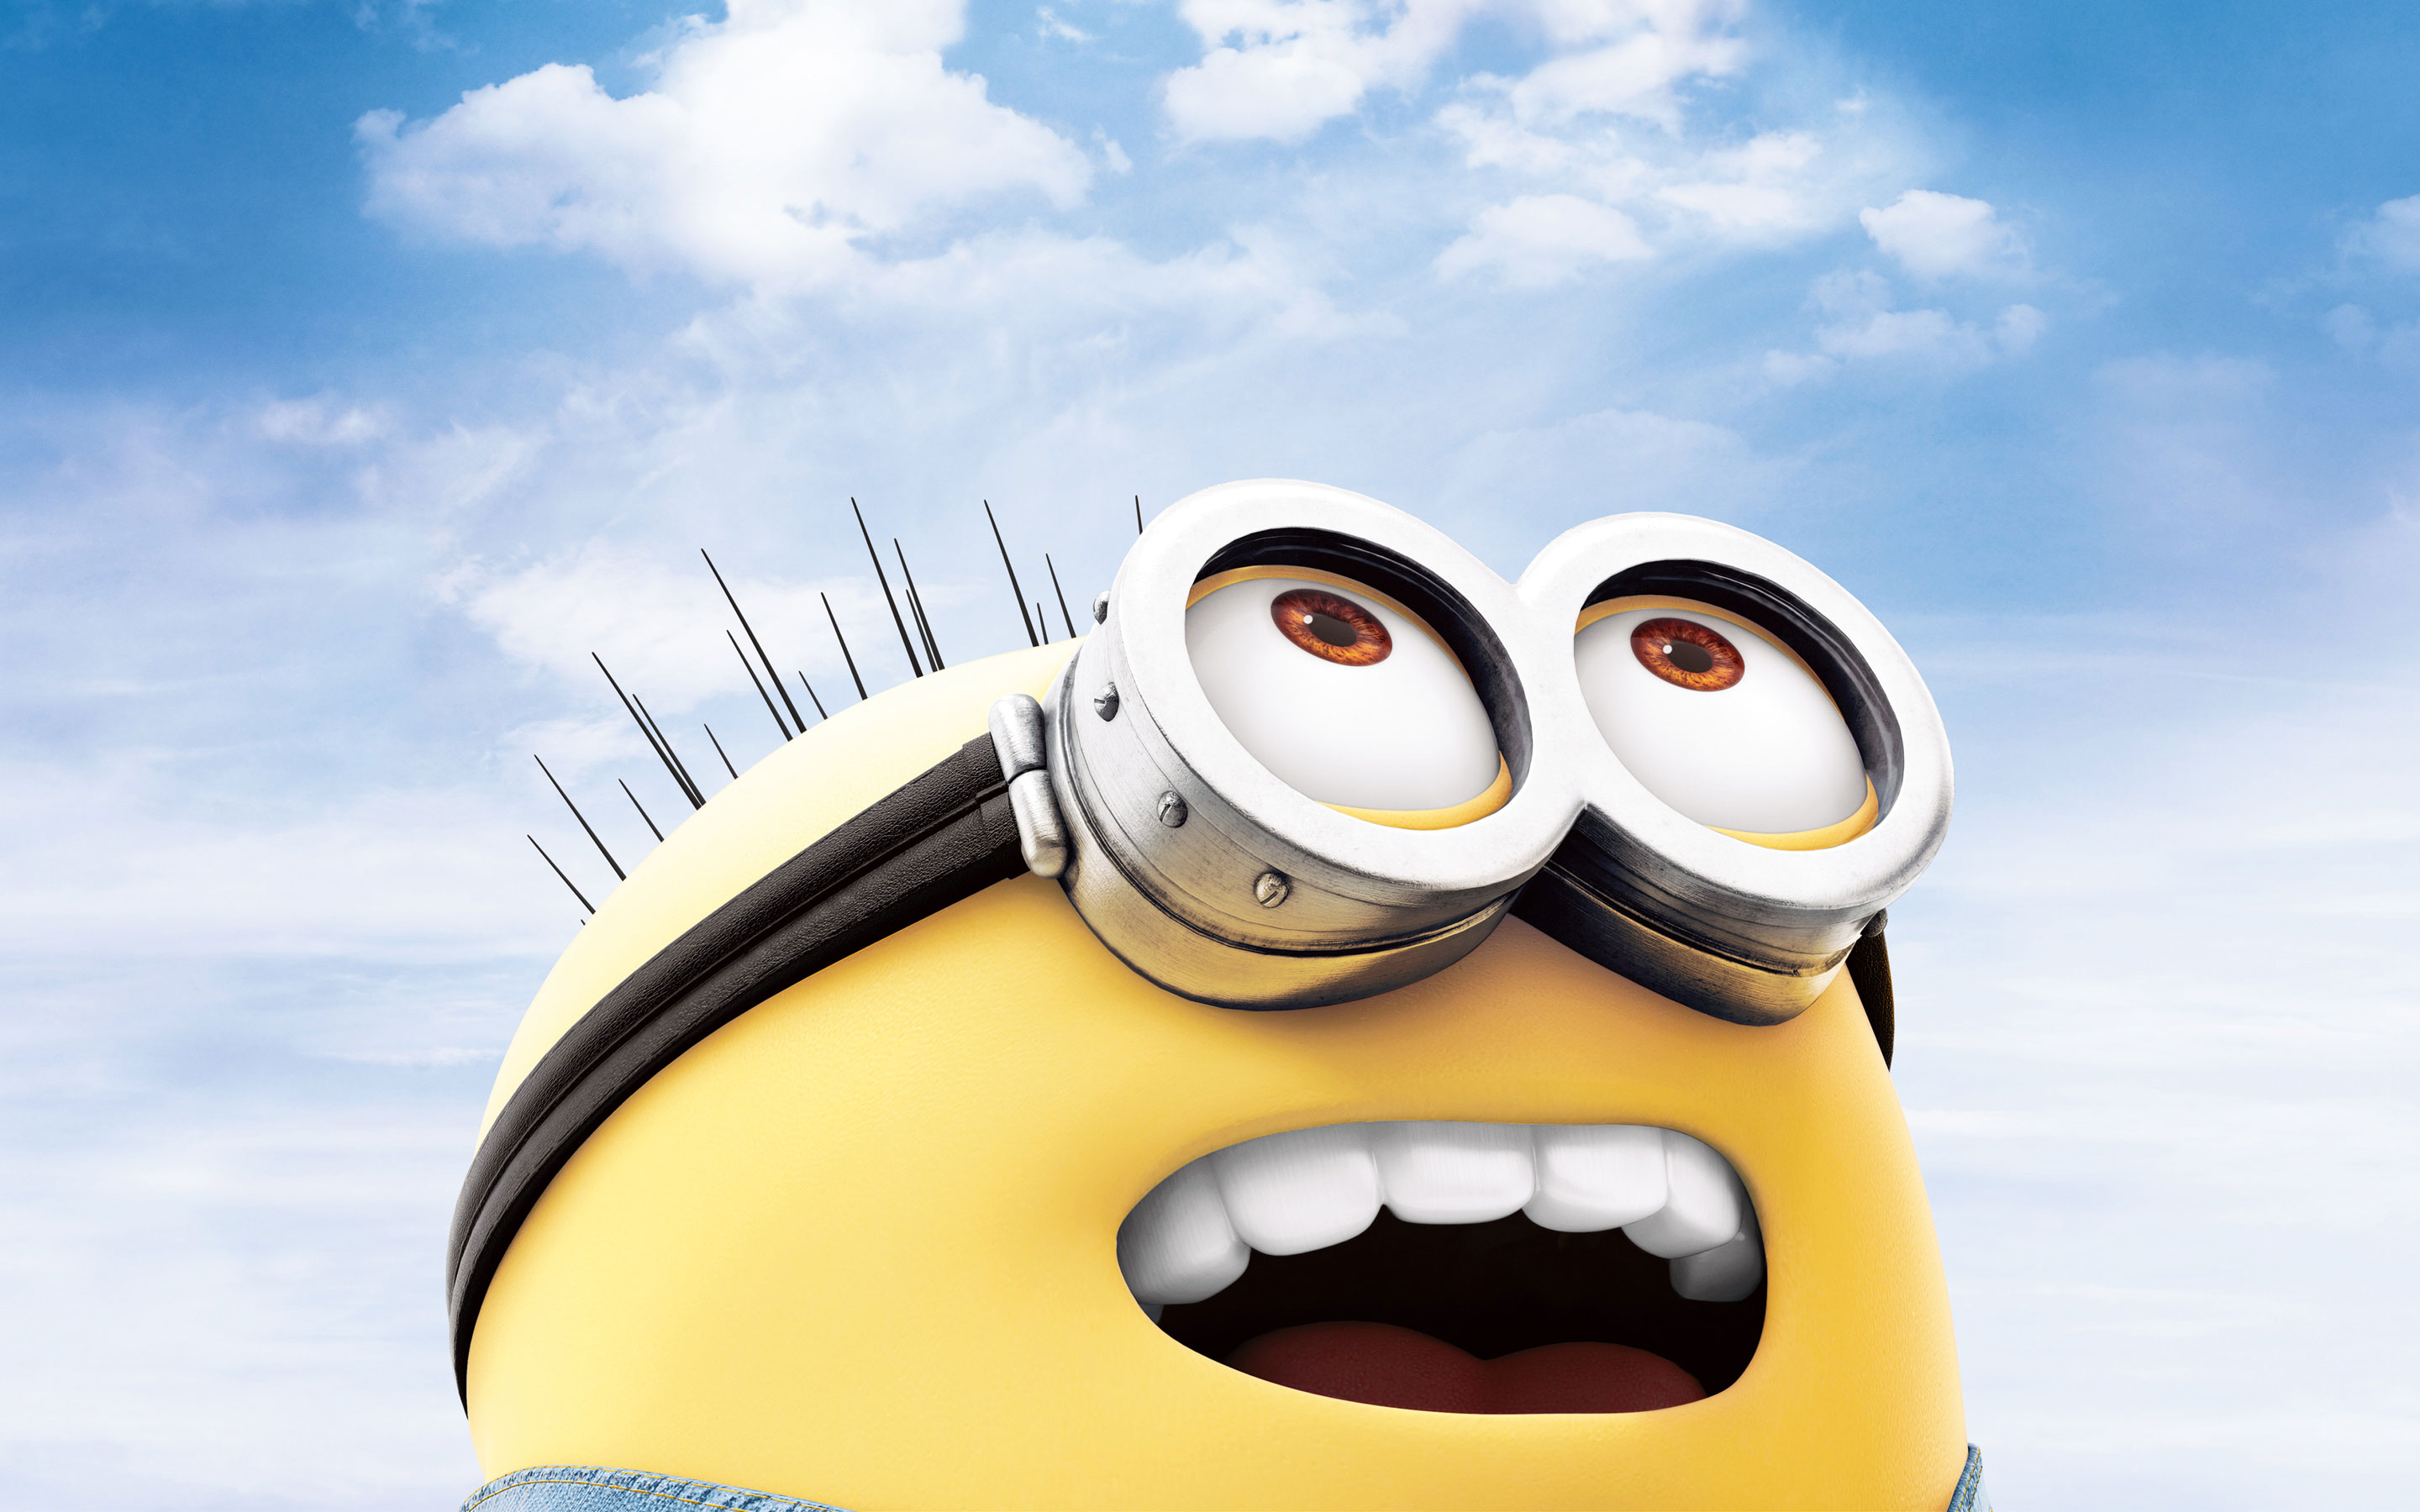 Despicable me 2 minions pictures movie wallpapers facebook cover photos designbolts - Mechant minion ...